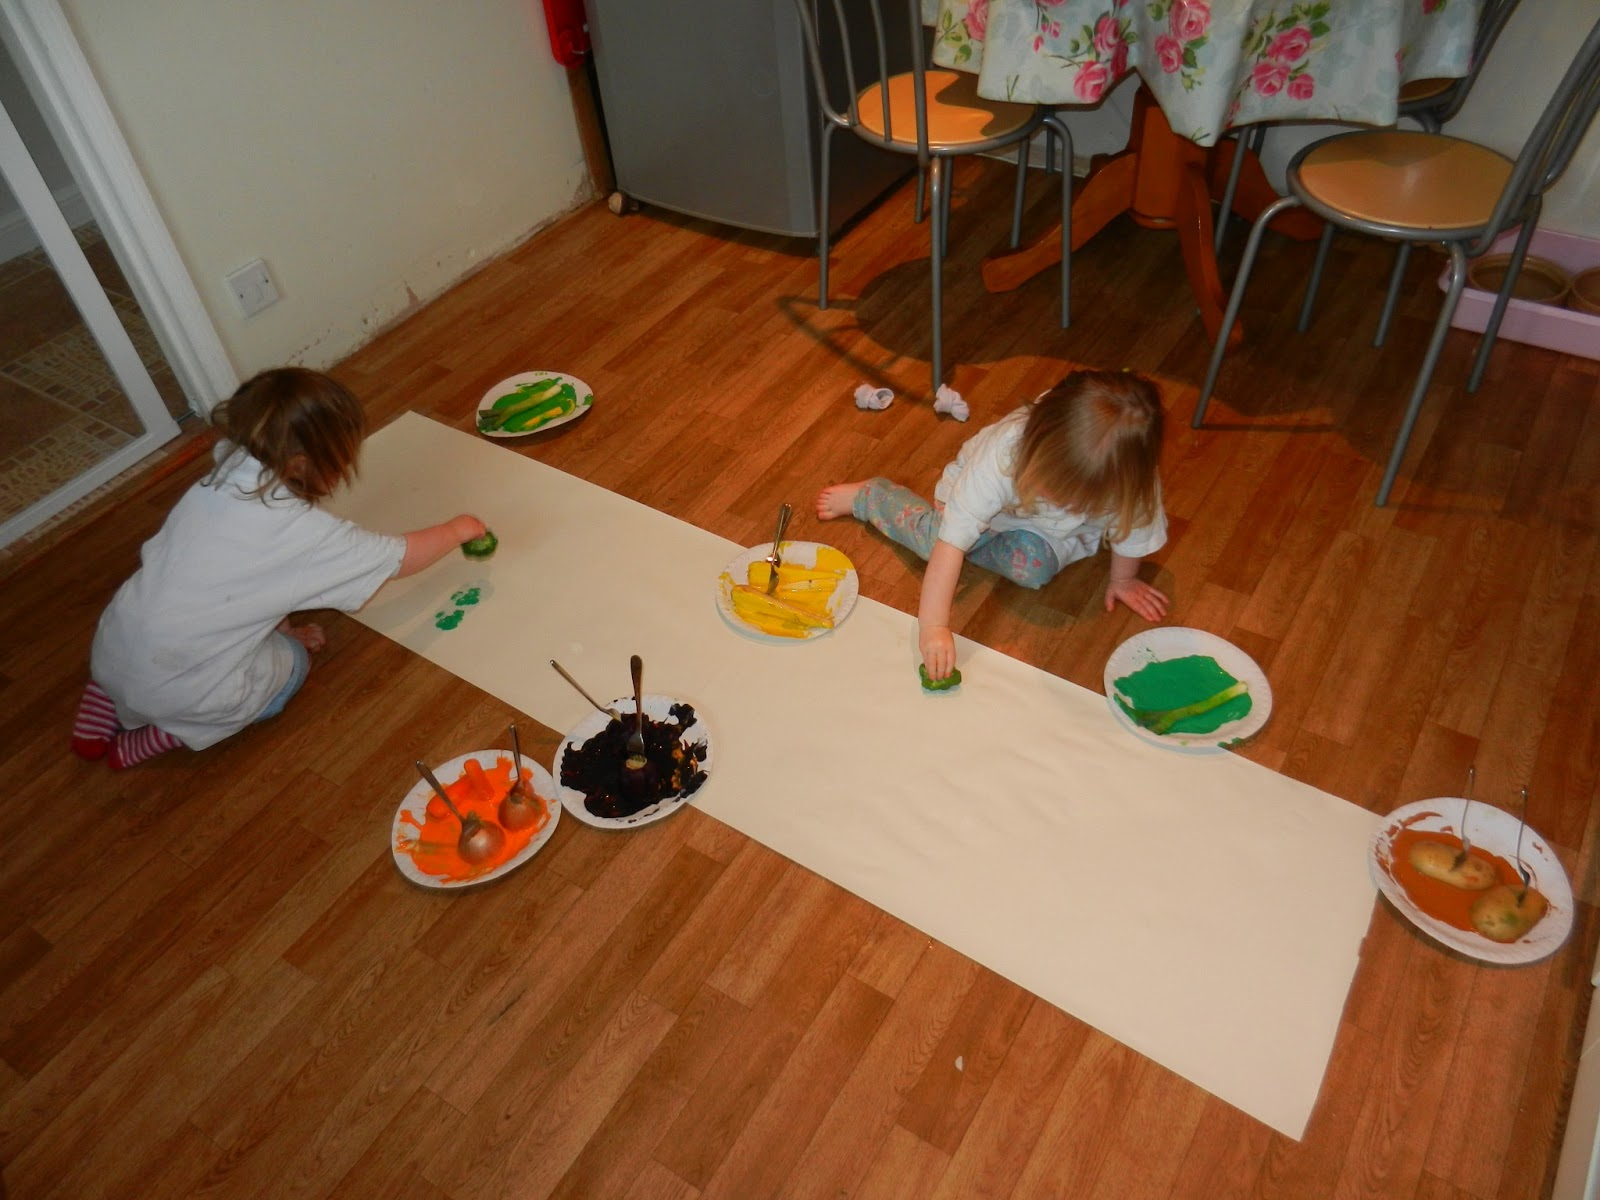 worms eye view painting with vegetables